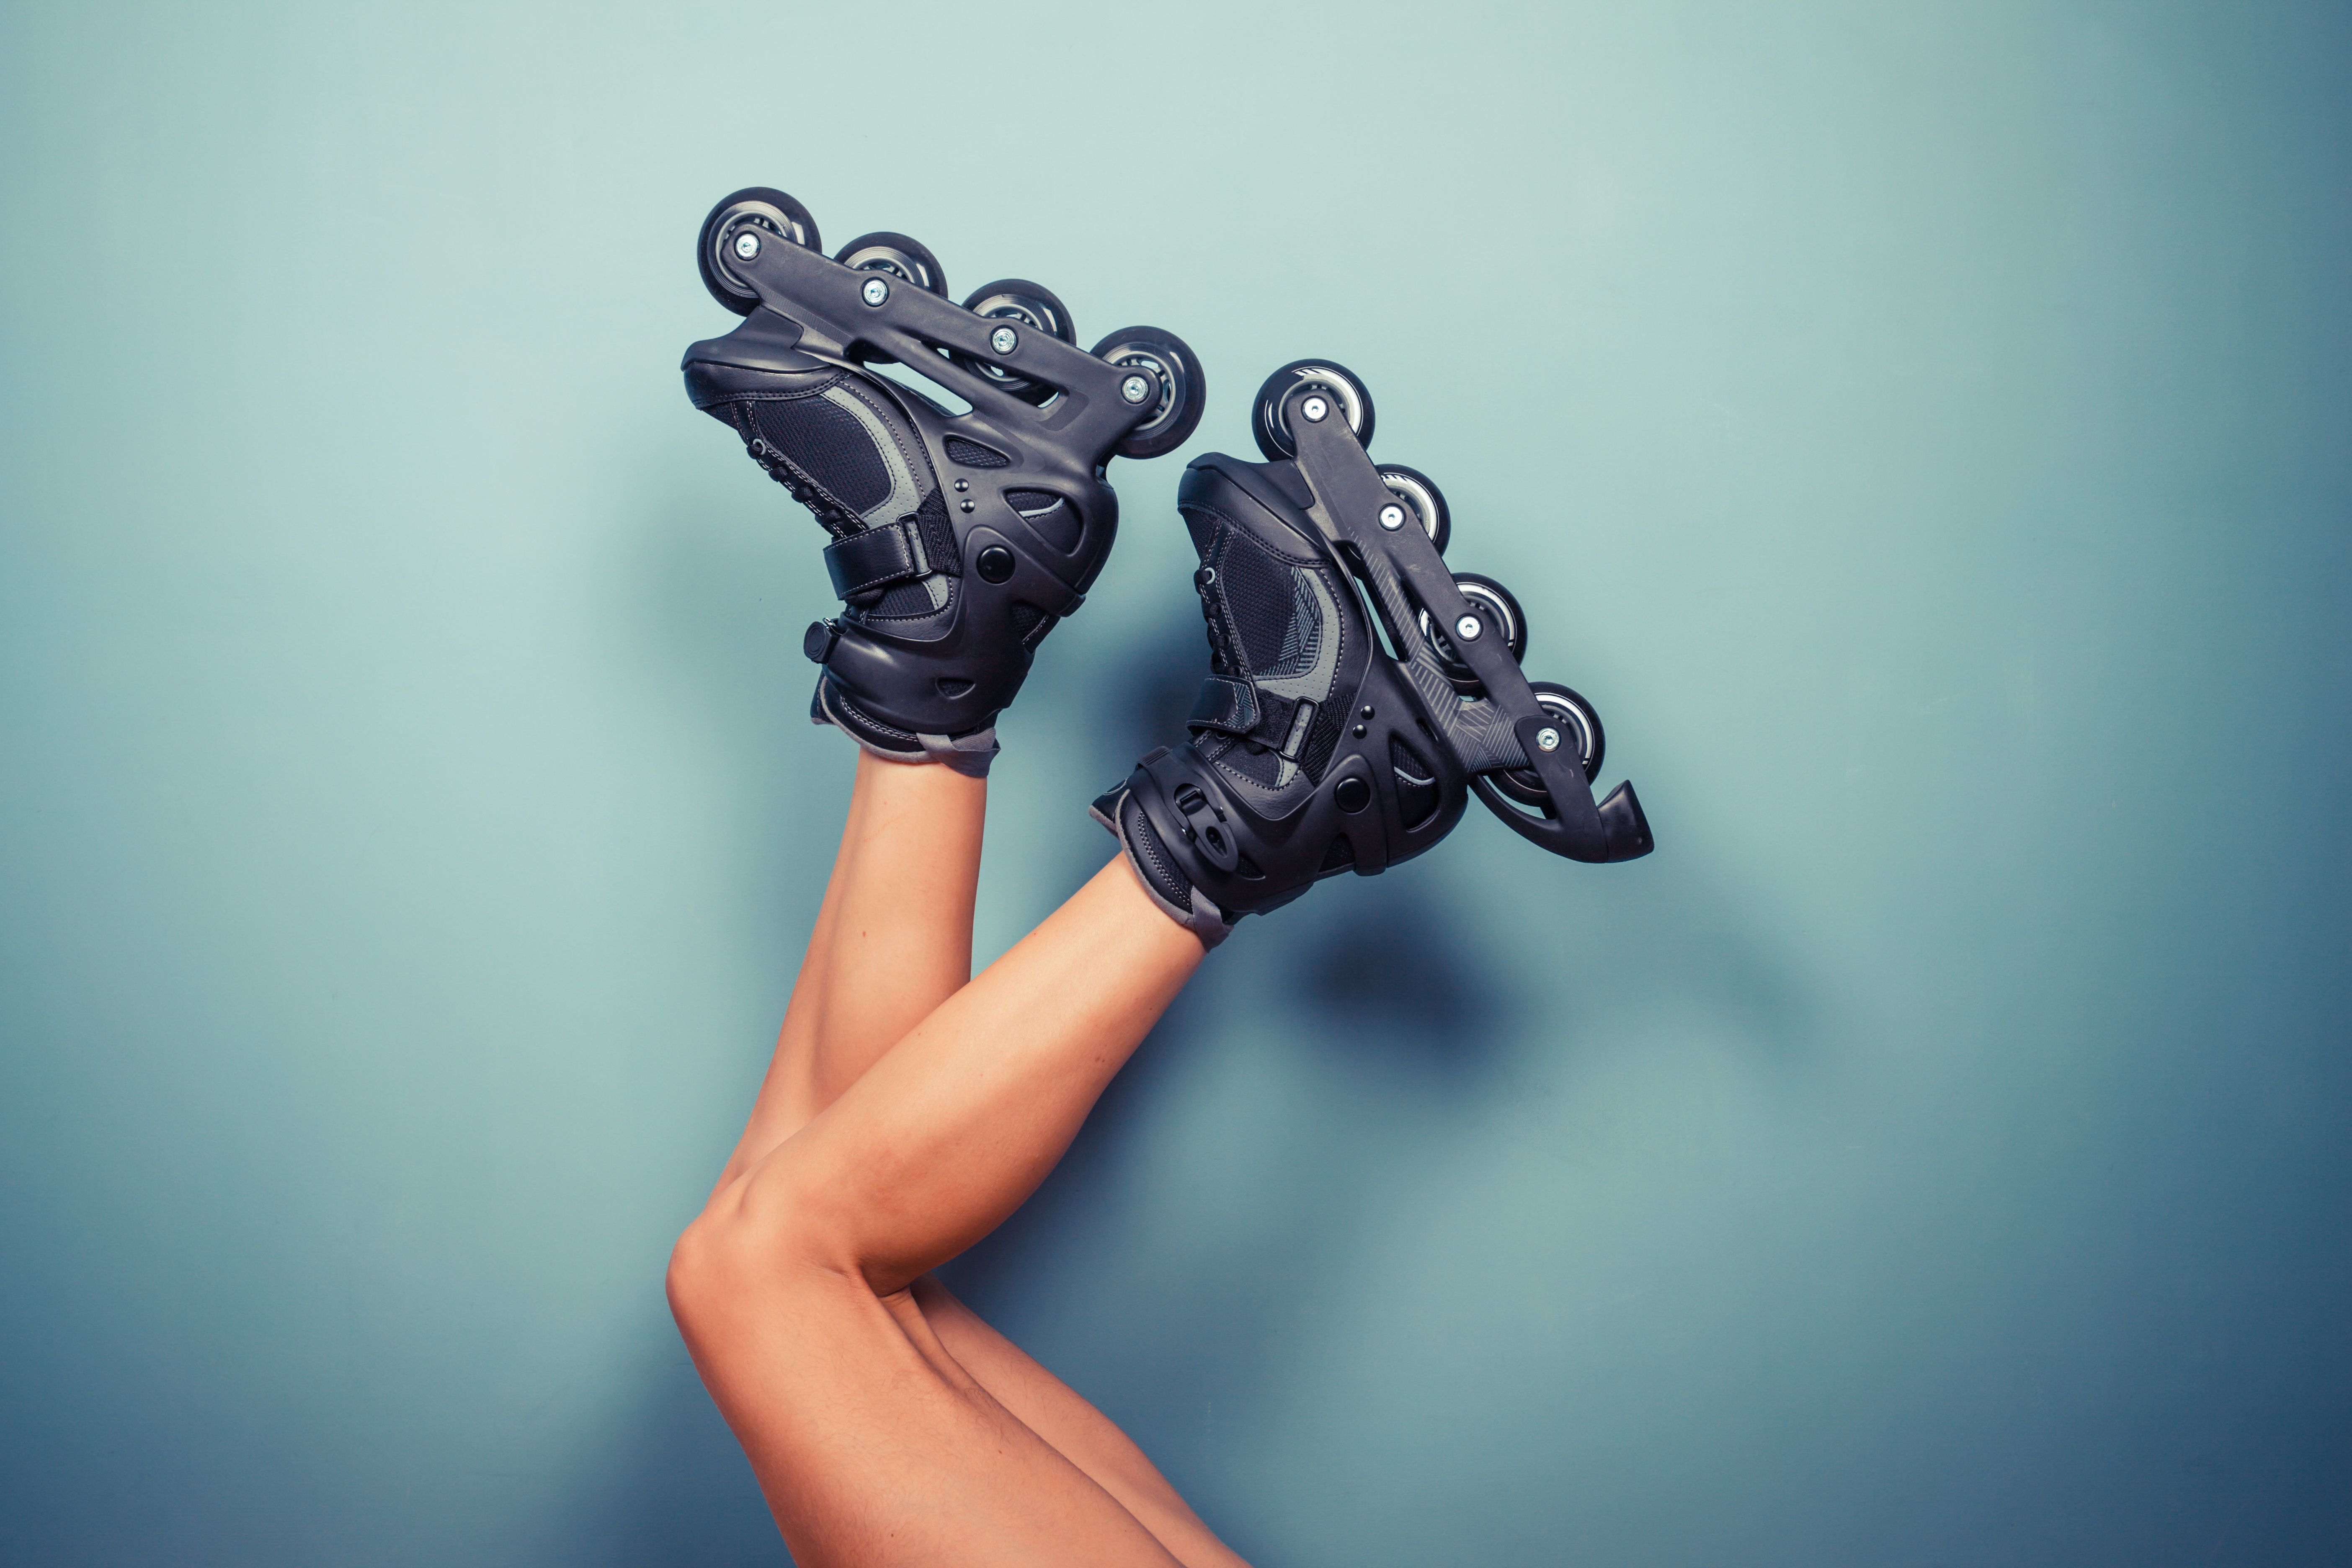 The legs of a young woman wearing rollerblades